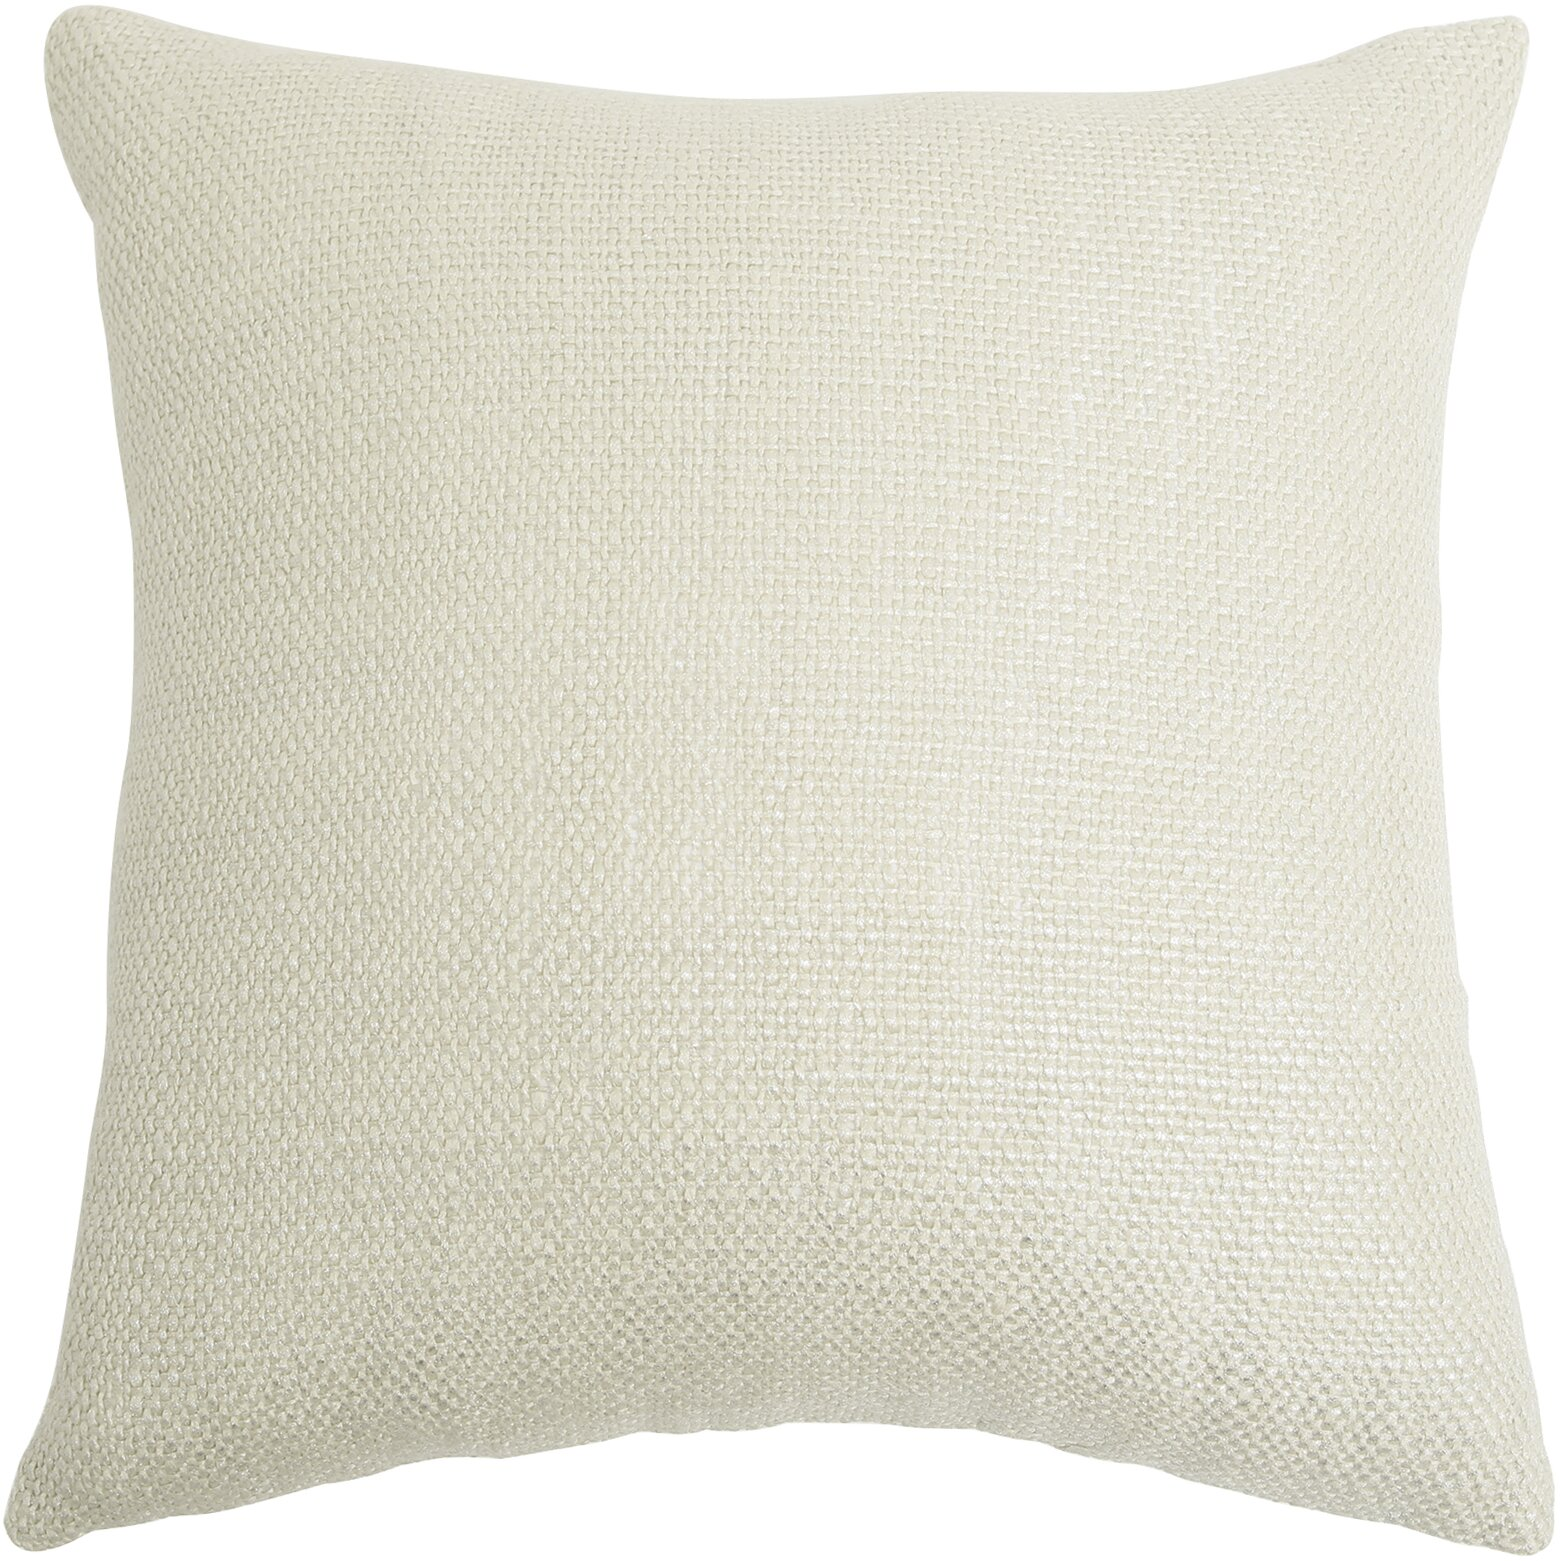 Wayfair Decorative Pillow Covers : Best Home Fashion, Inc. Weave Throw Pillow Cover & Reviews Wayfair